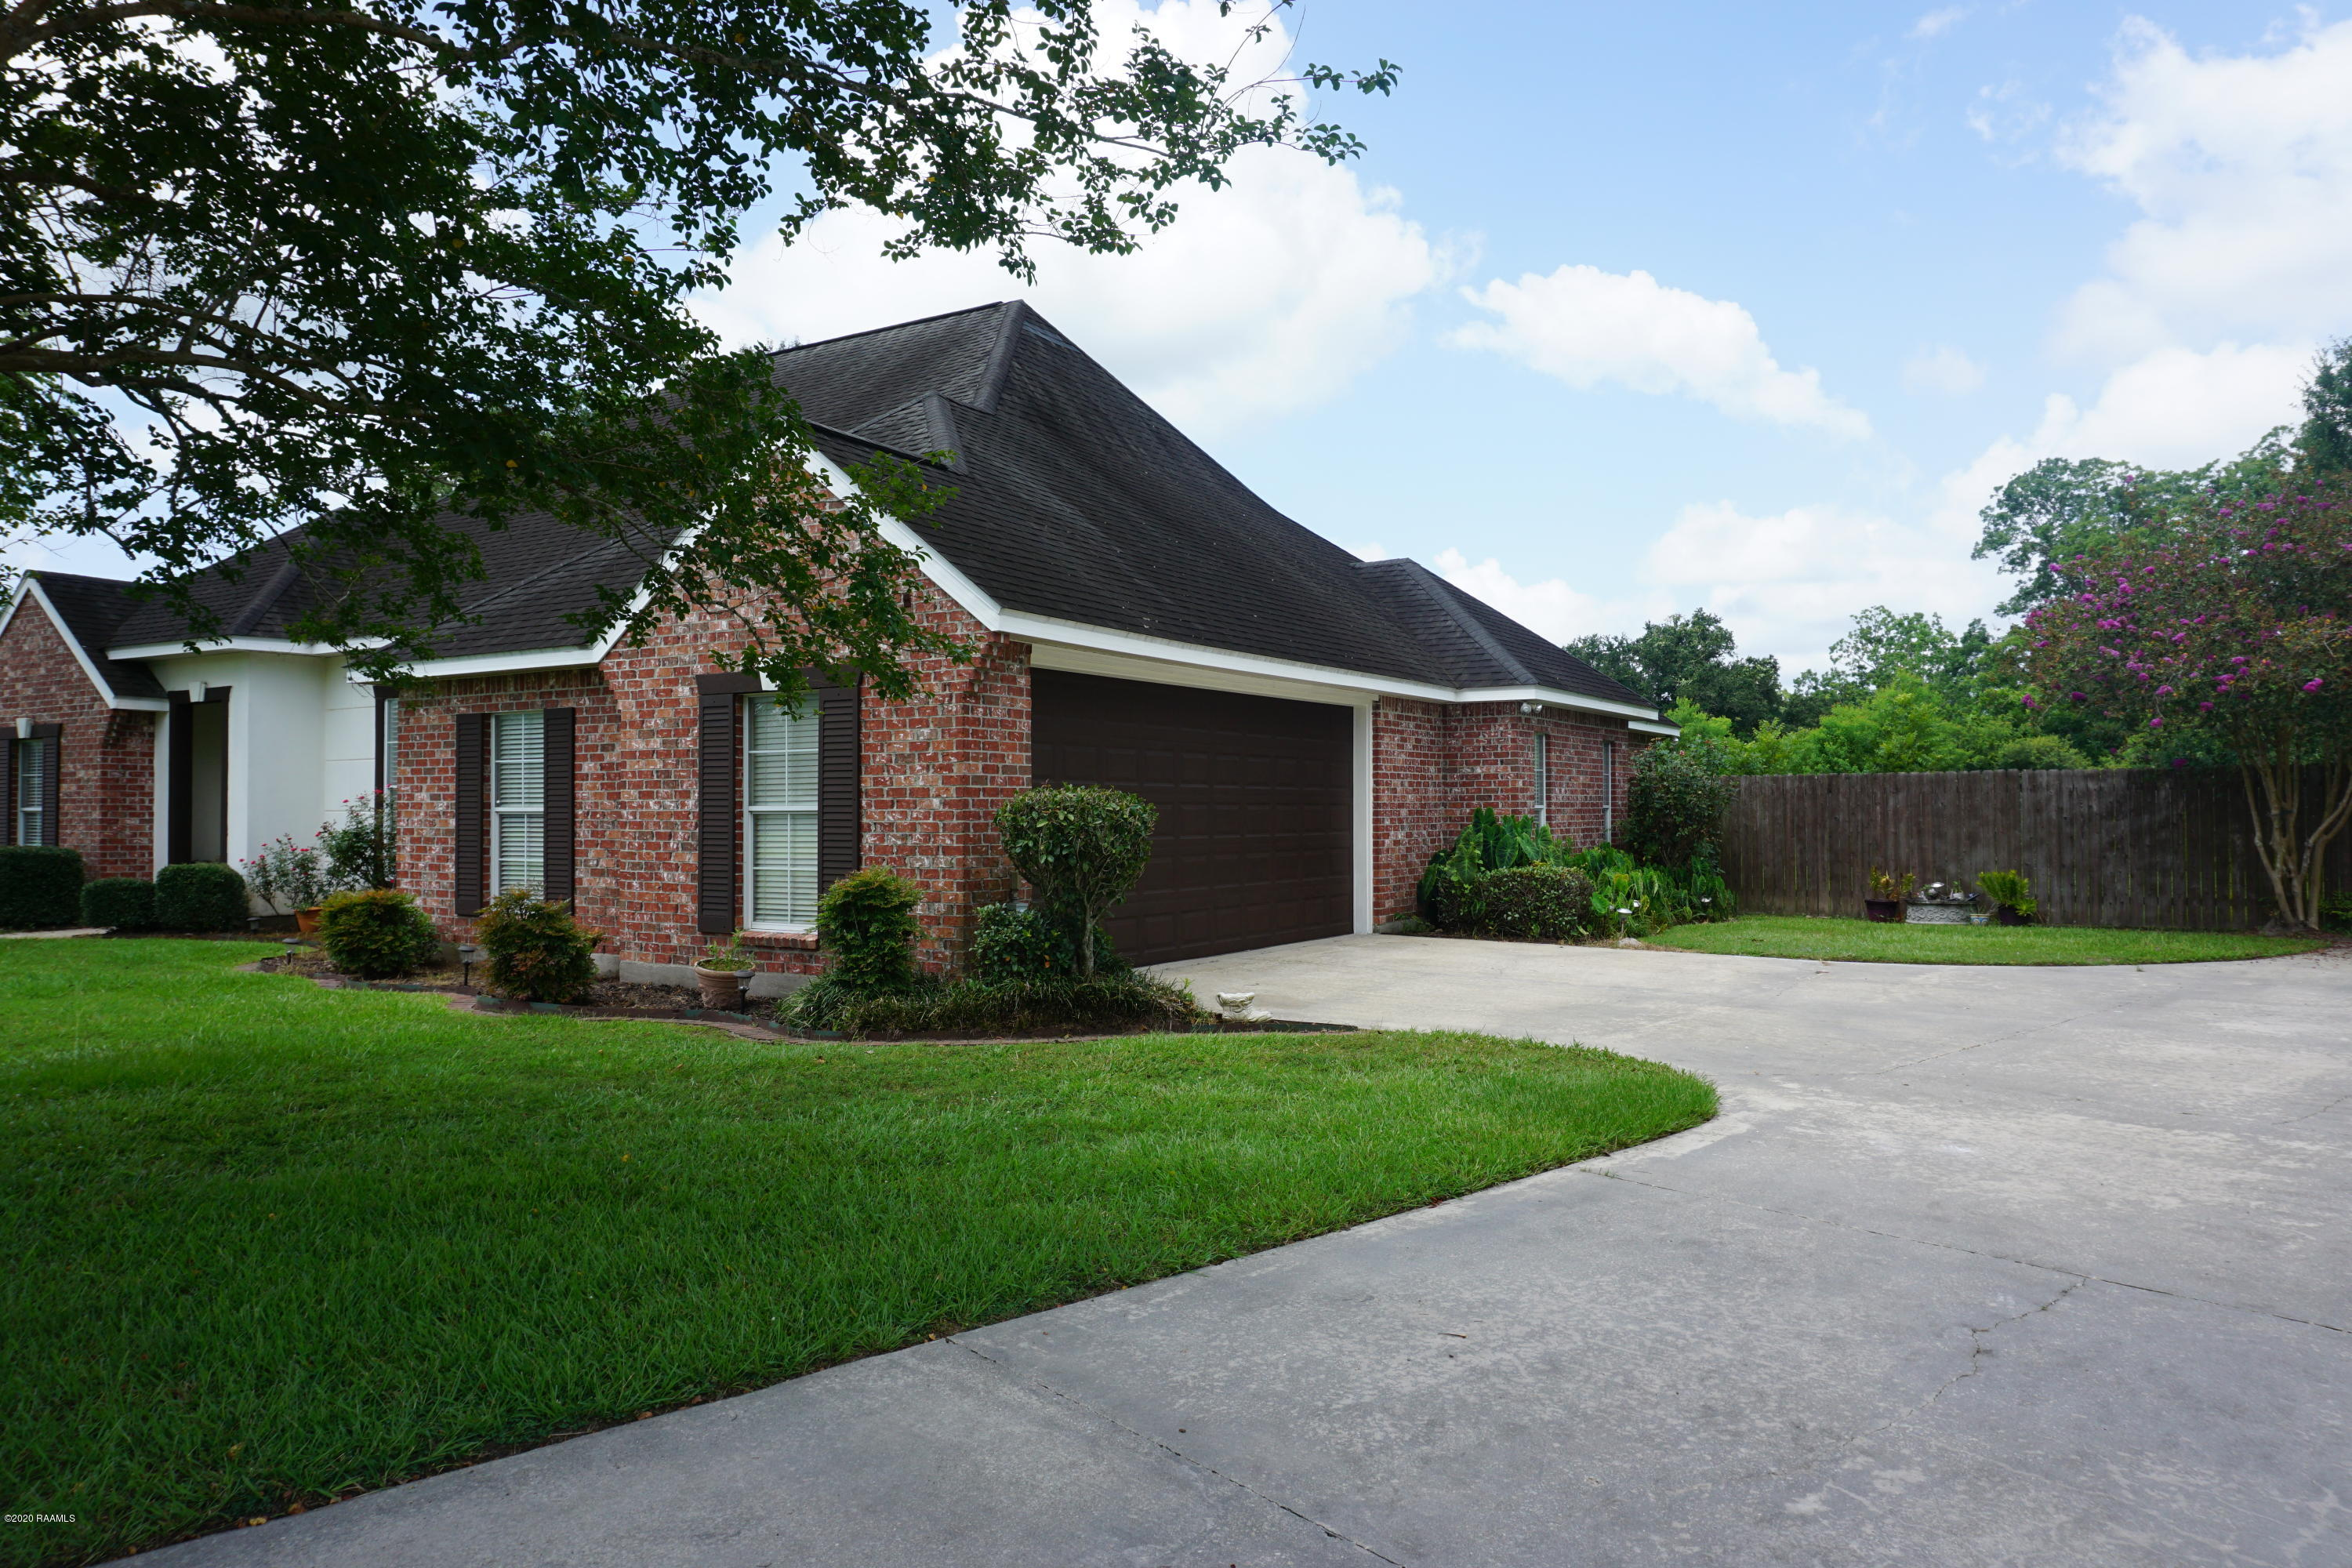 1042 Myrtle Bend, Breaux Bridge, LA 70517 Photo #2